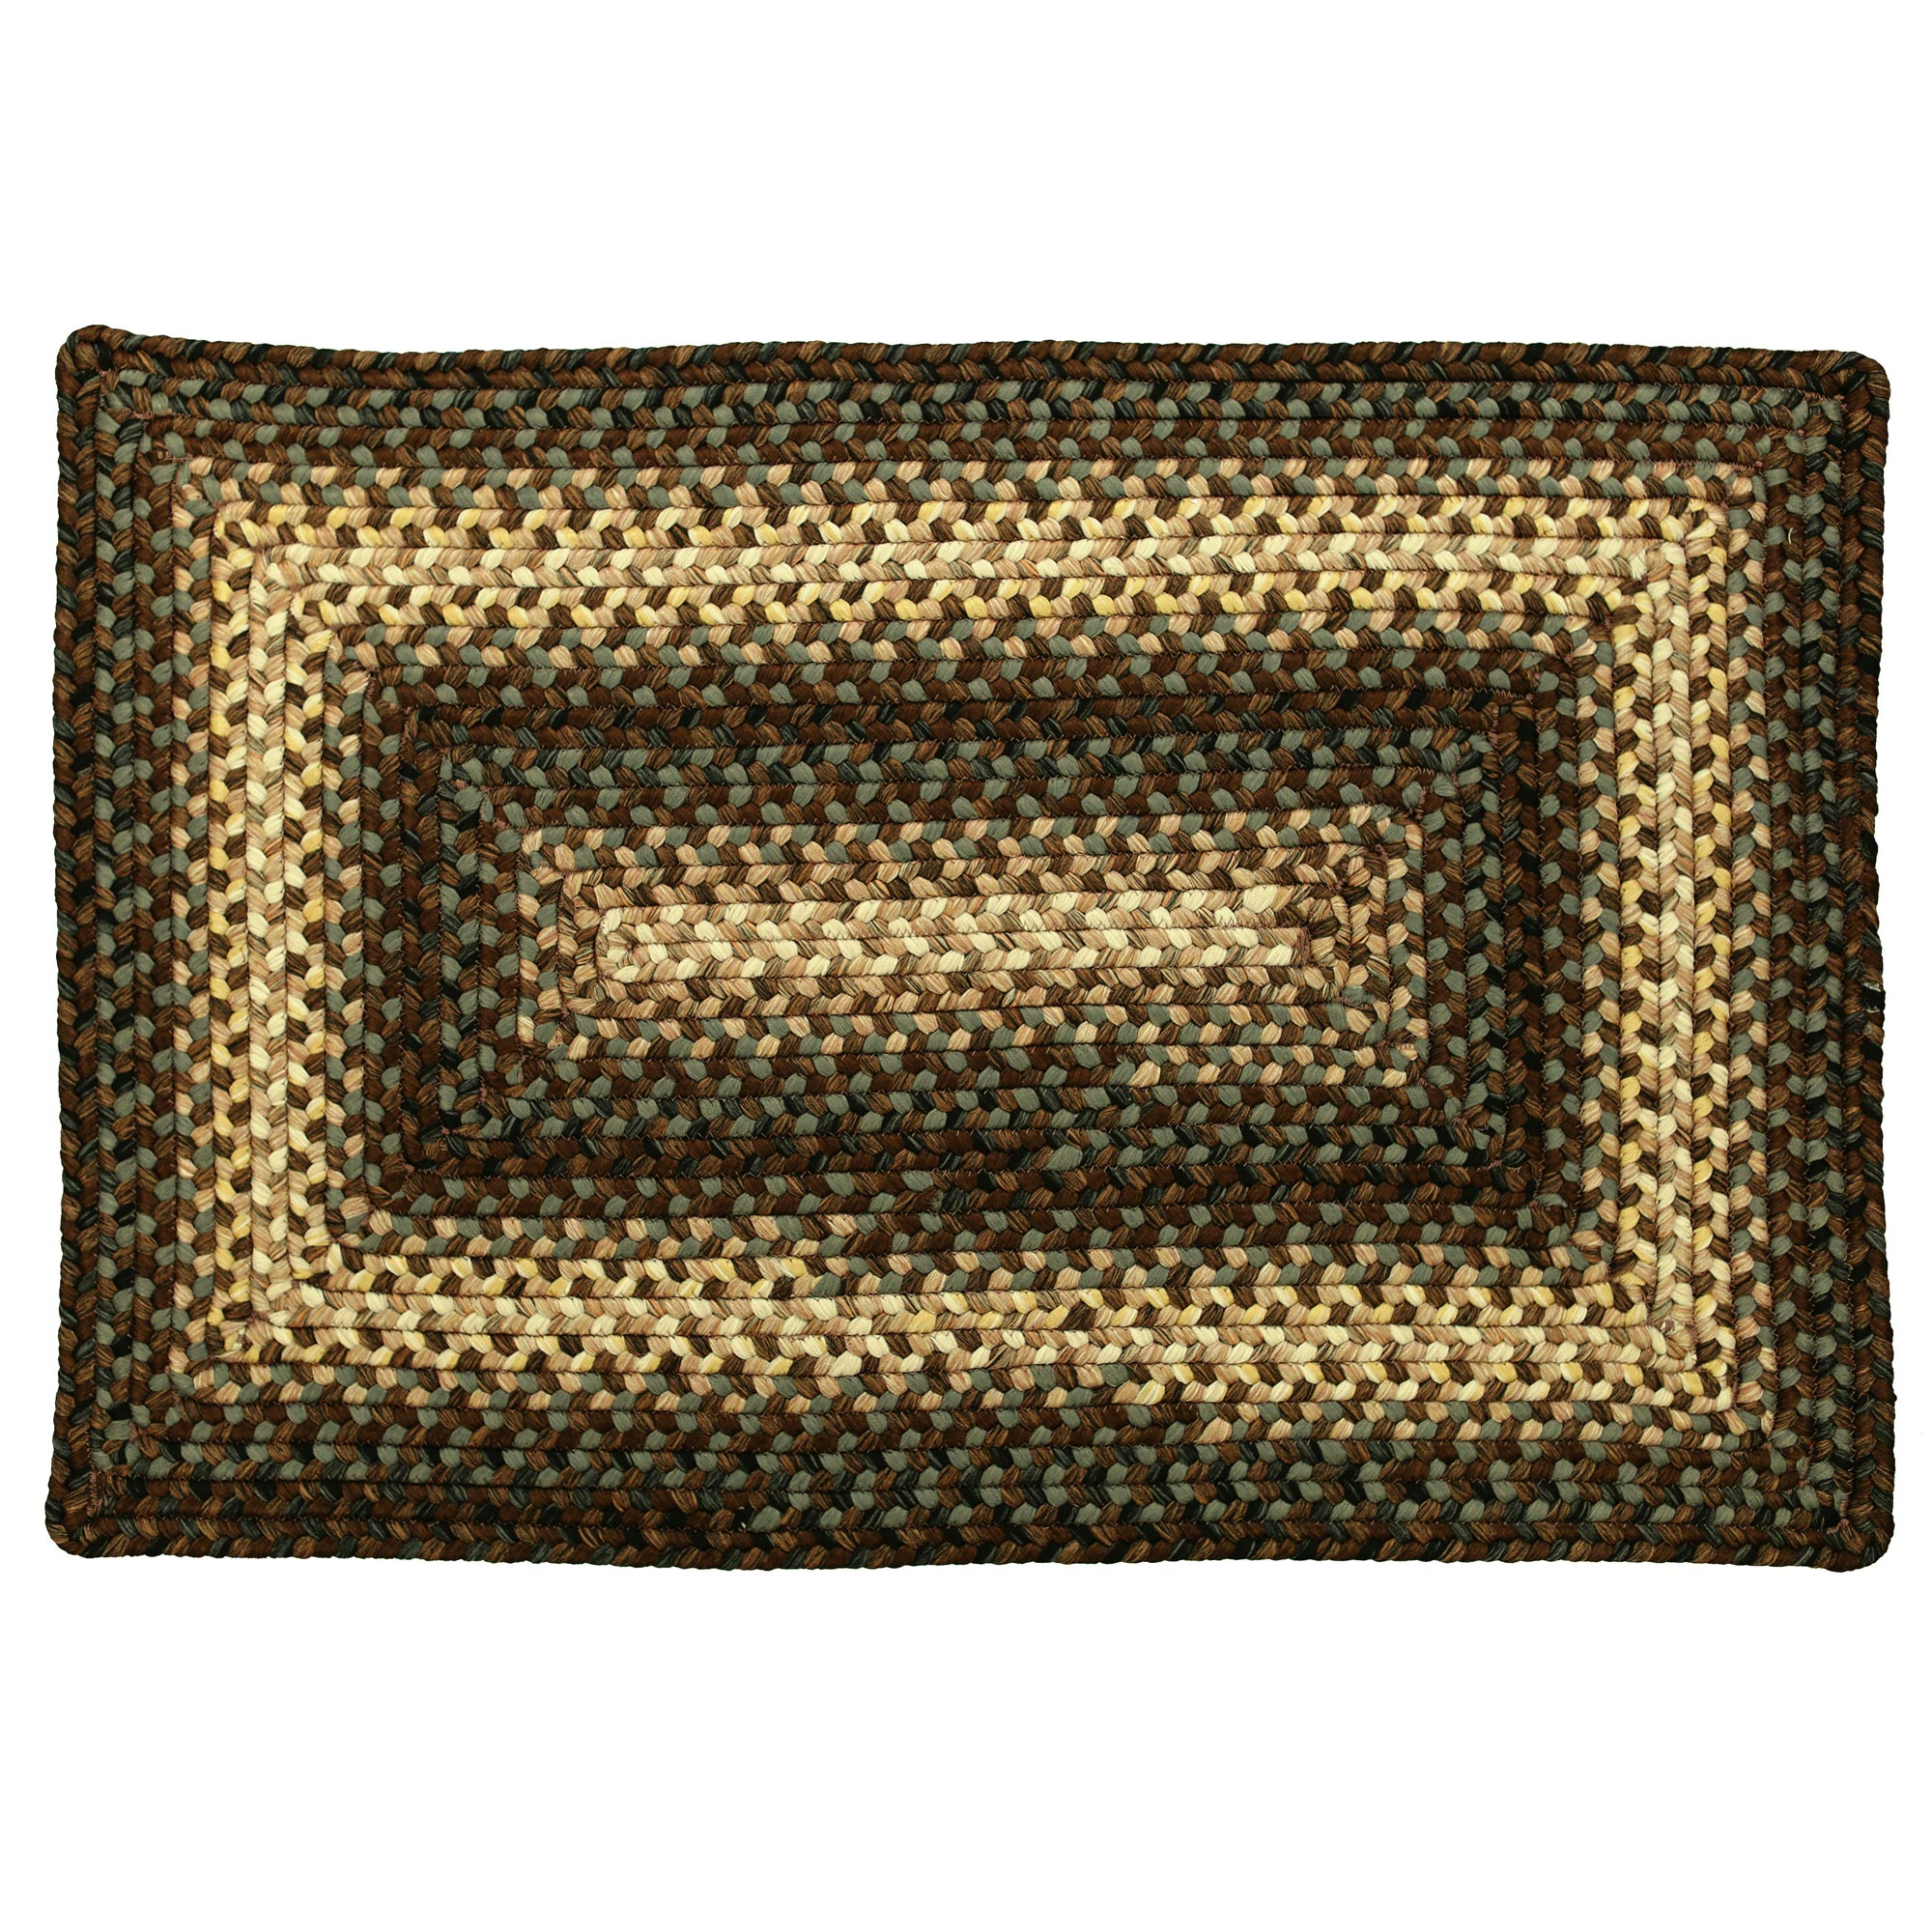 Brown And Black Country Braided Rug 20x30 To 8x10 Oval